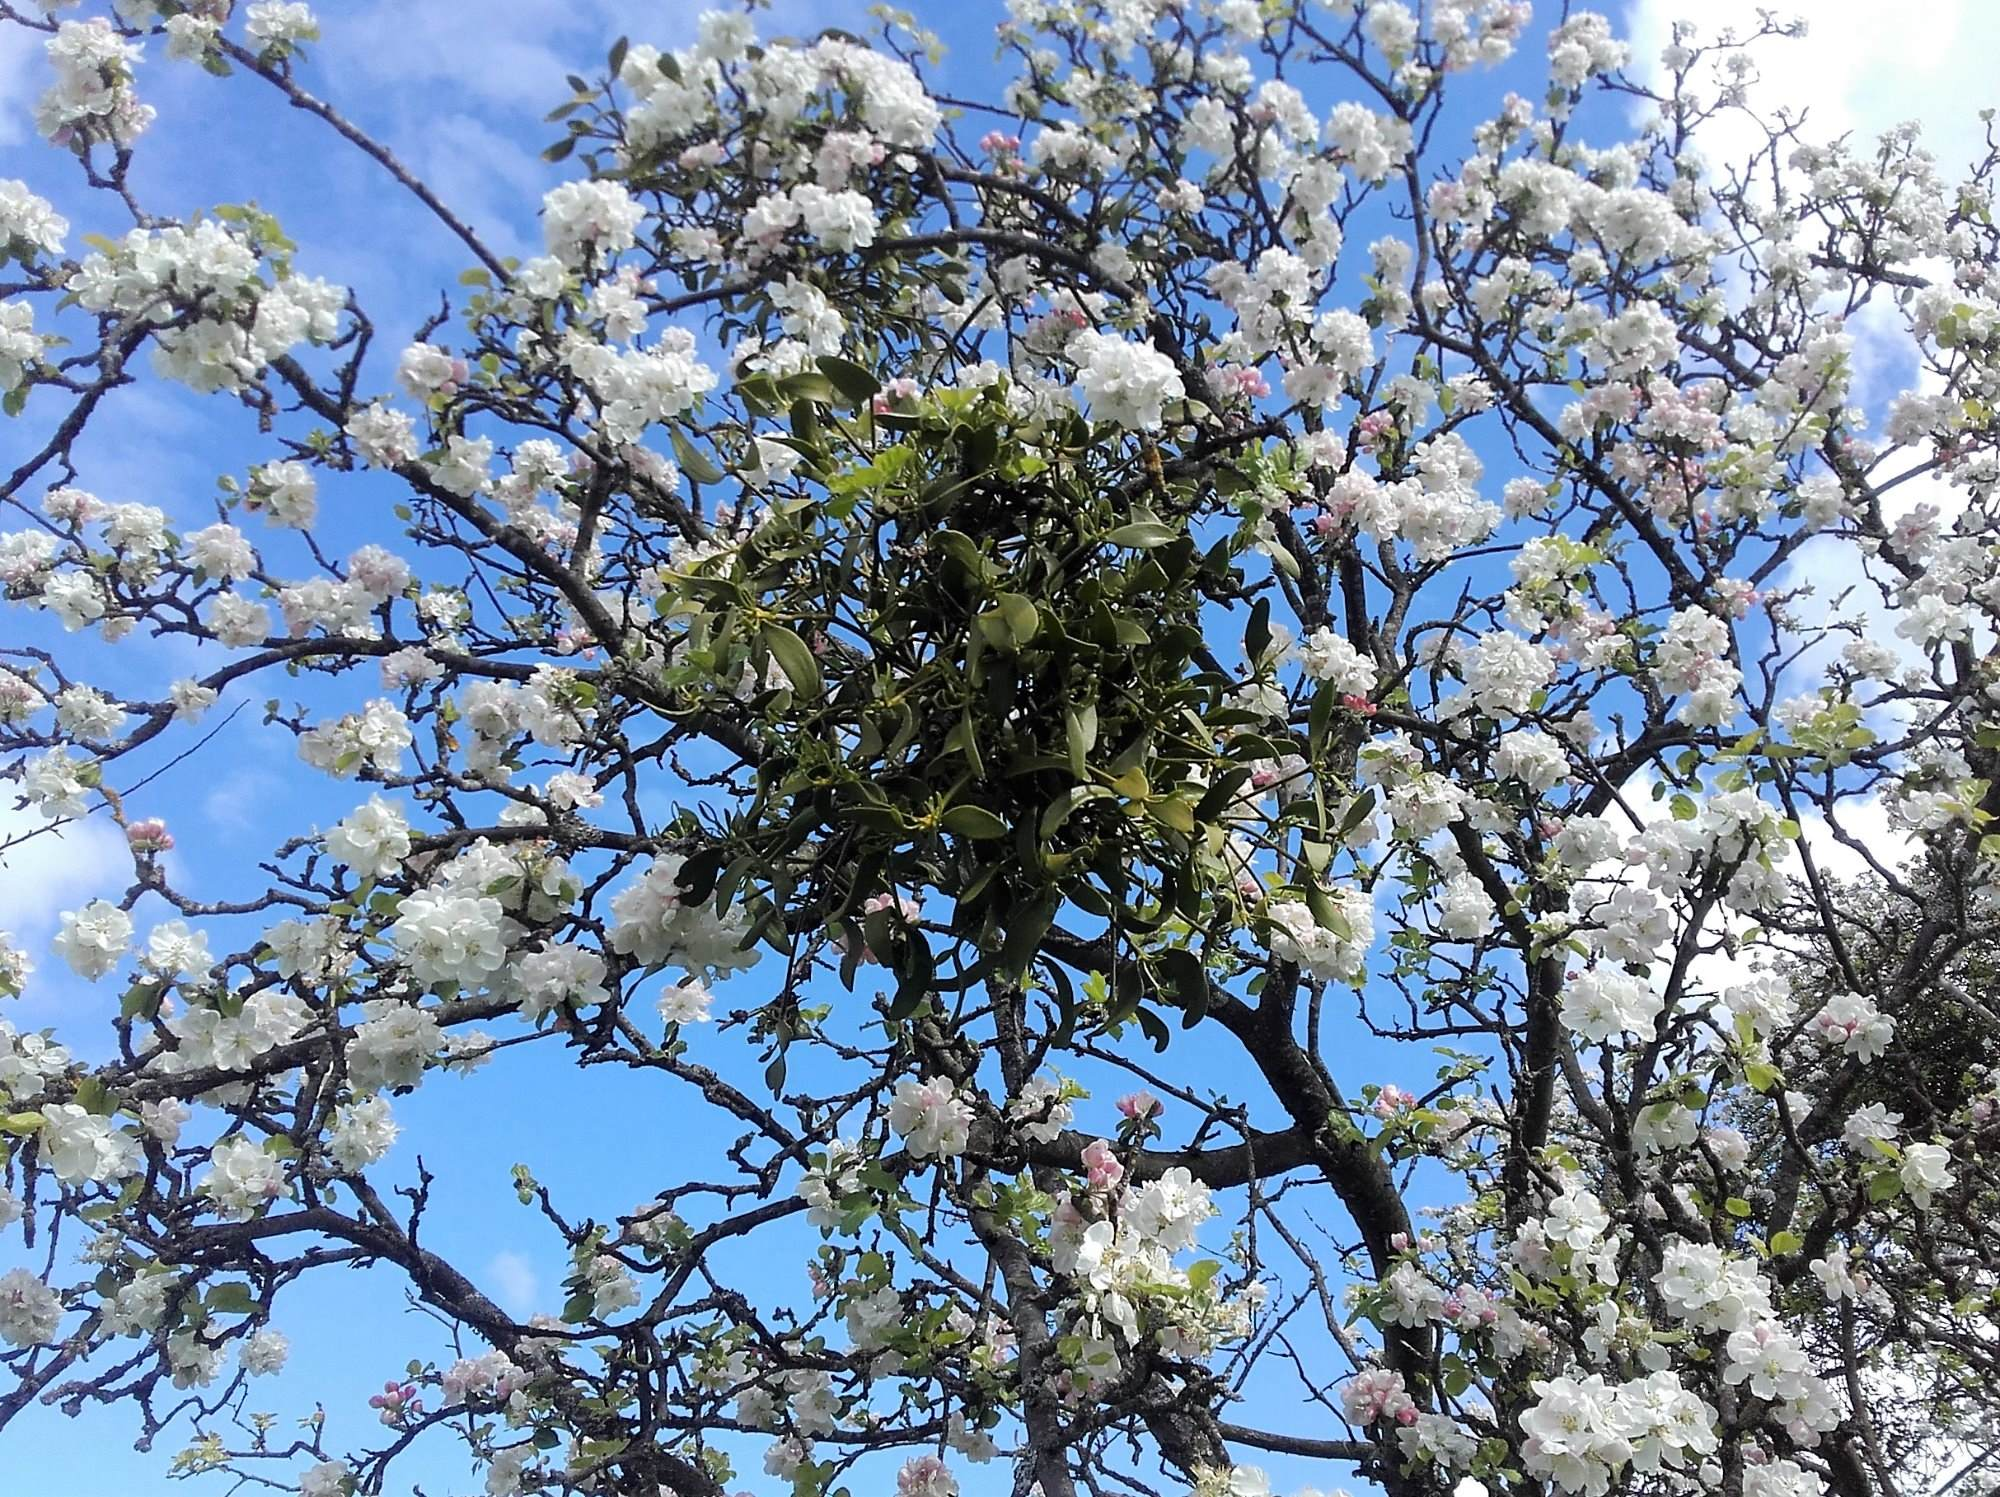 mistletoe in apple blossom